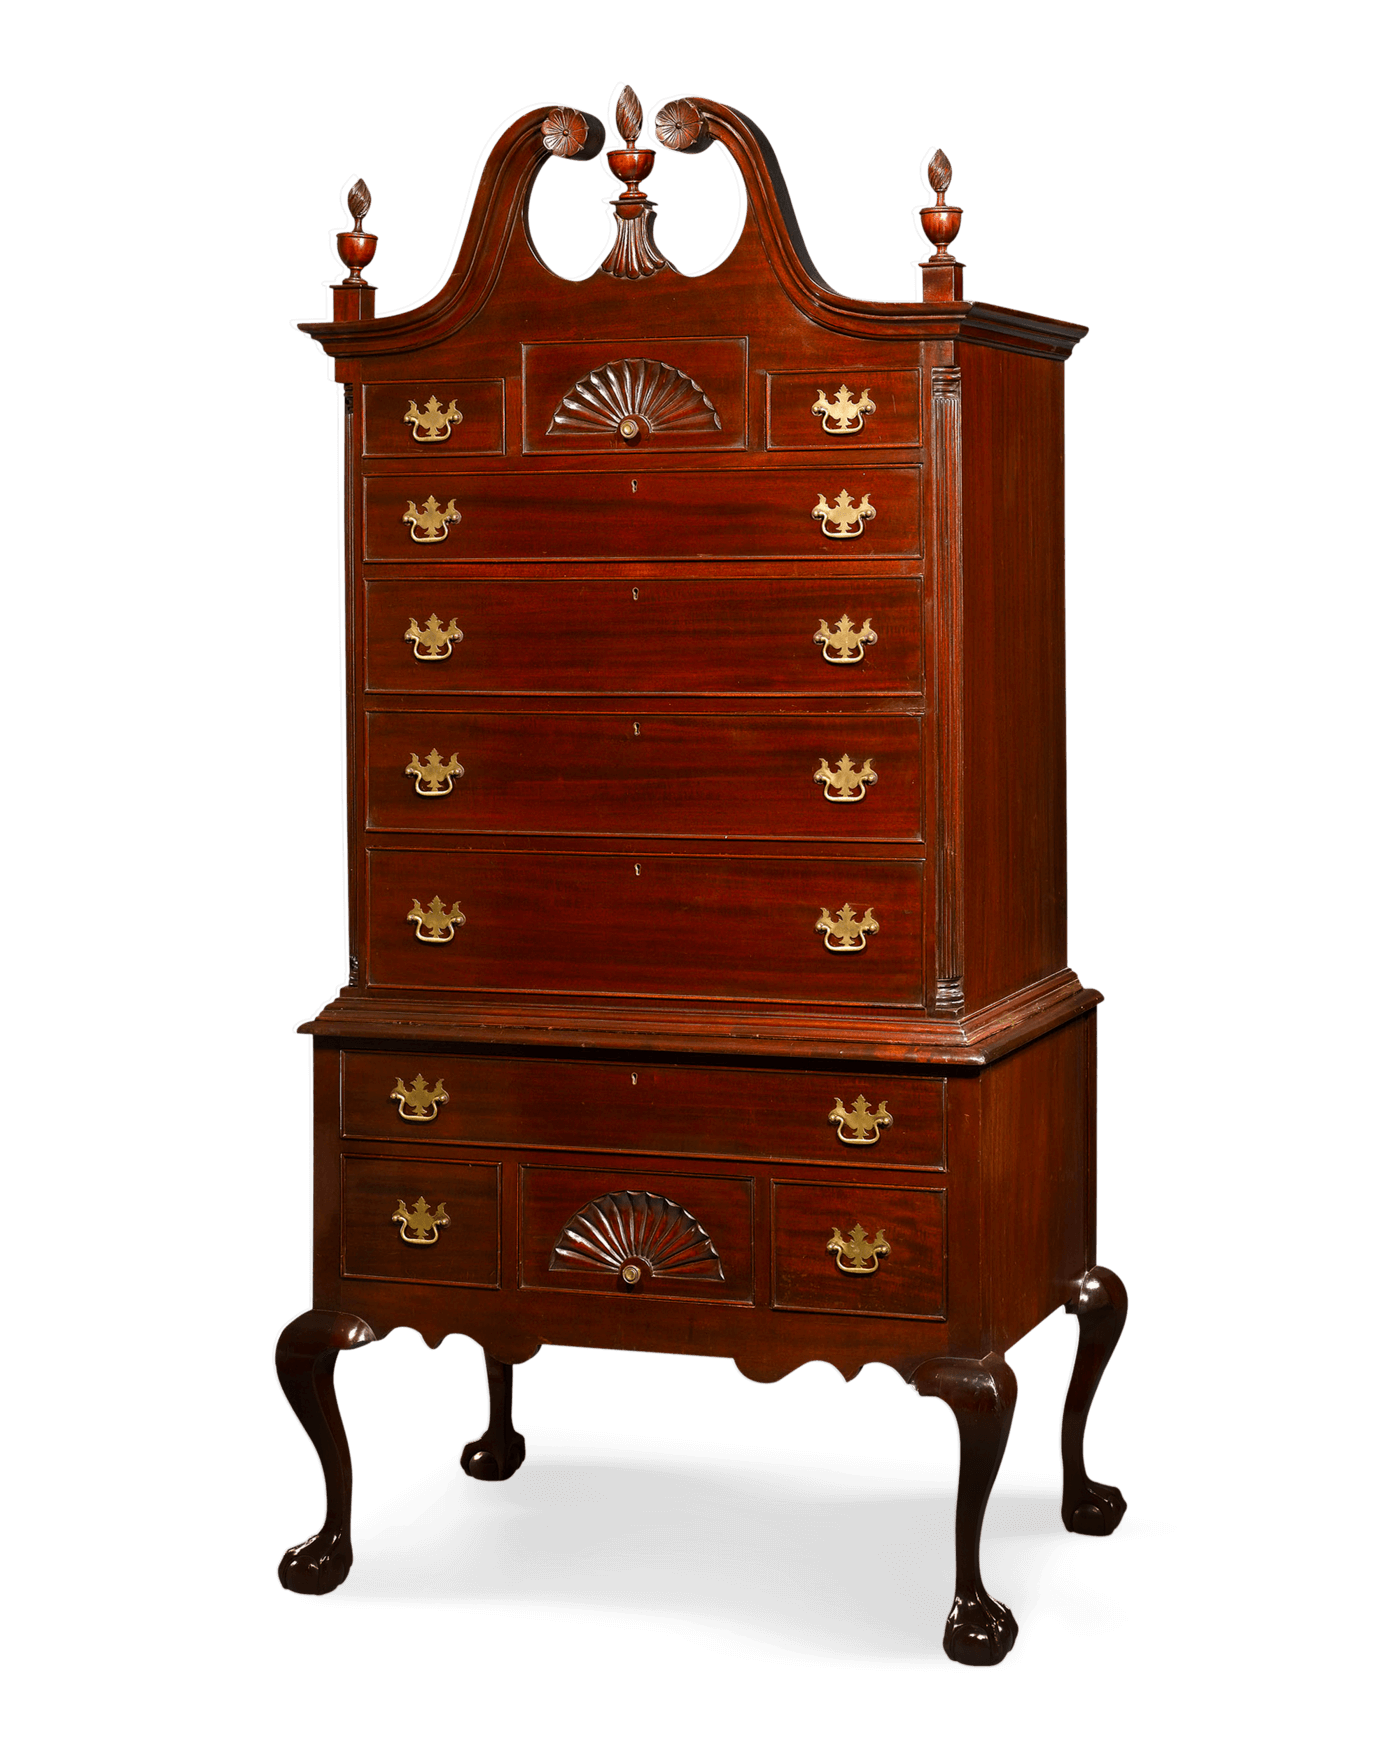 Queen Anne Style Furniture Png Free